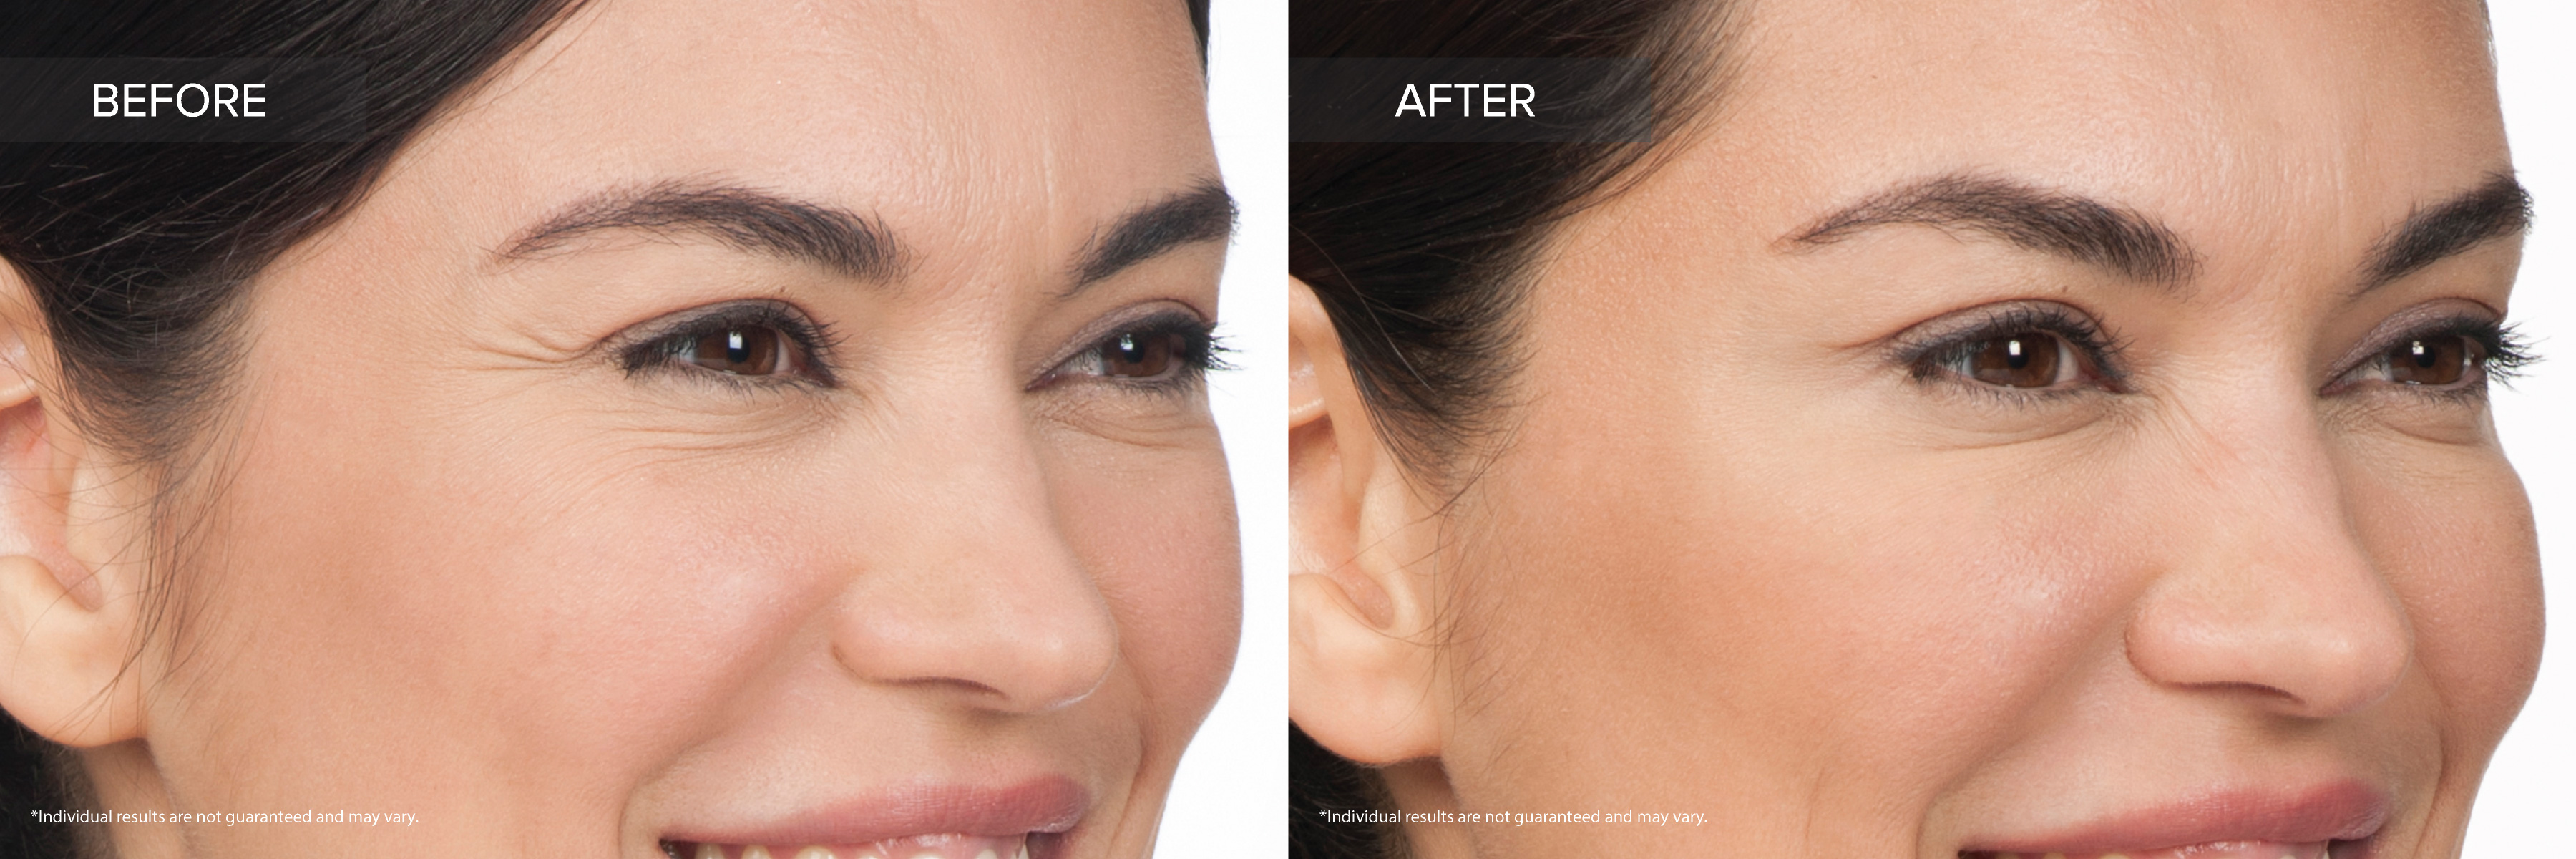 Botox Cosmetic - Moderate Crows Feet